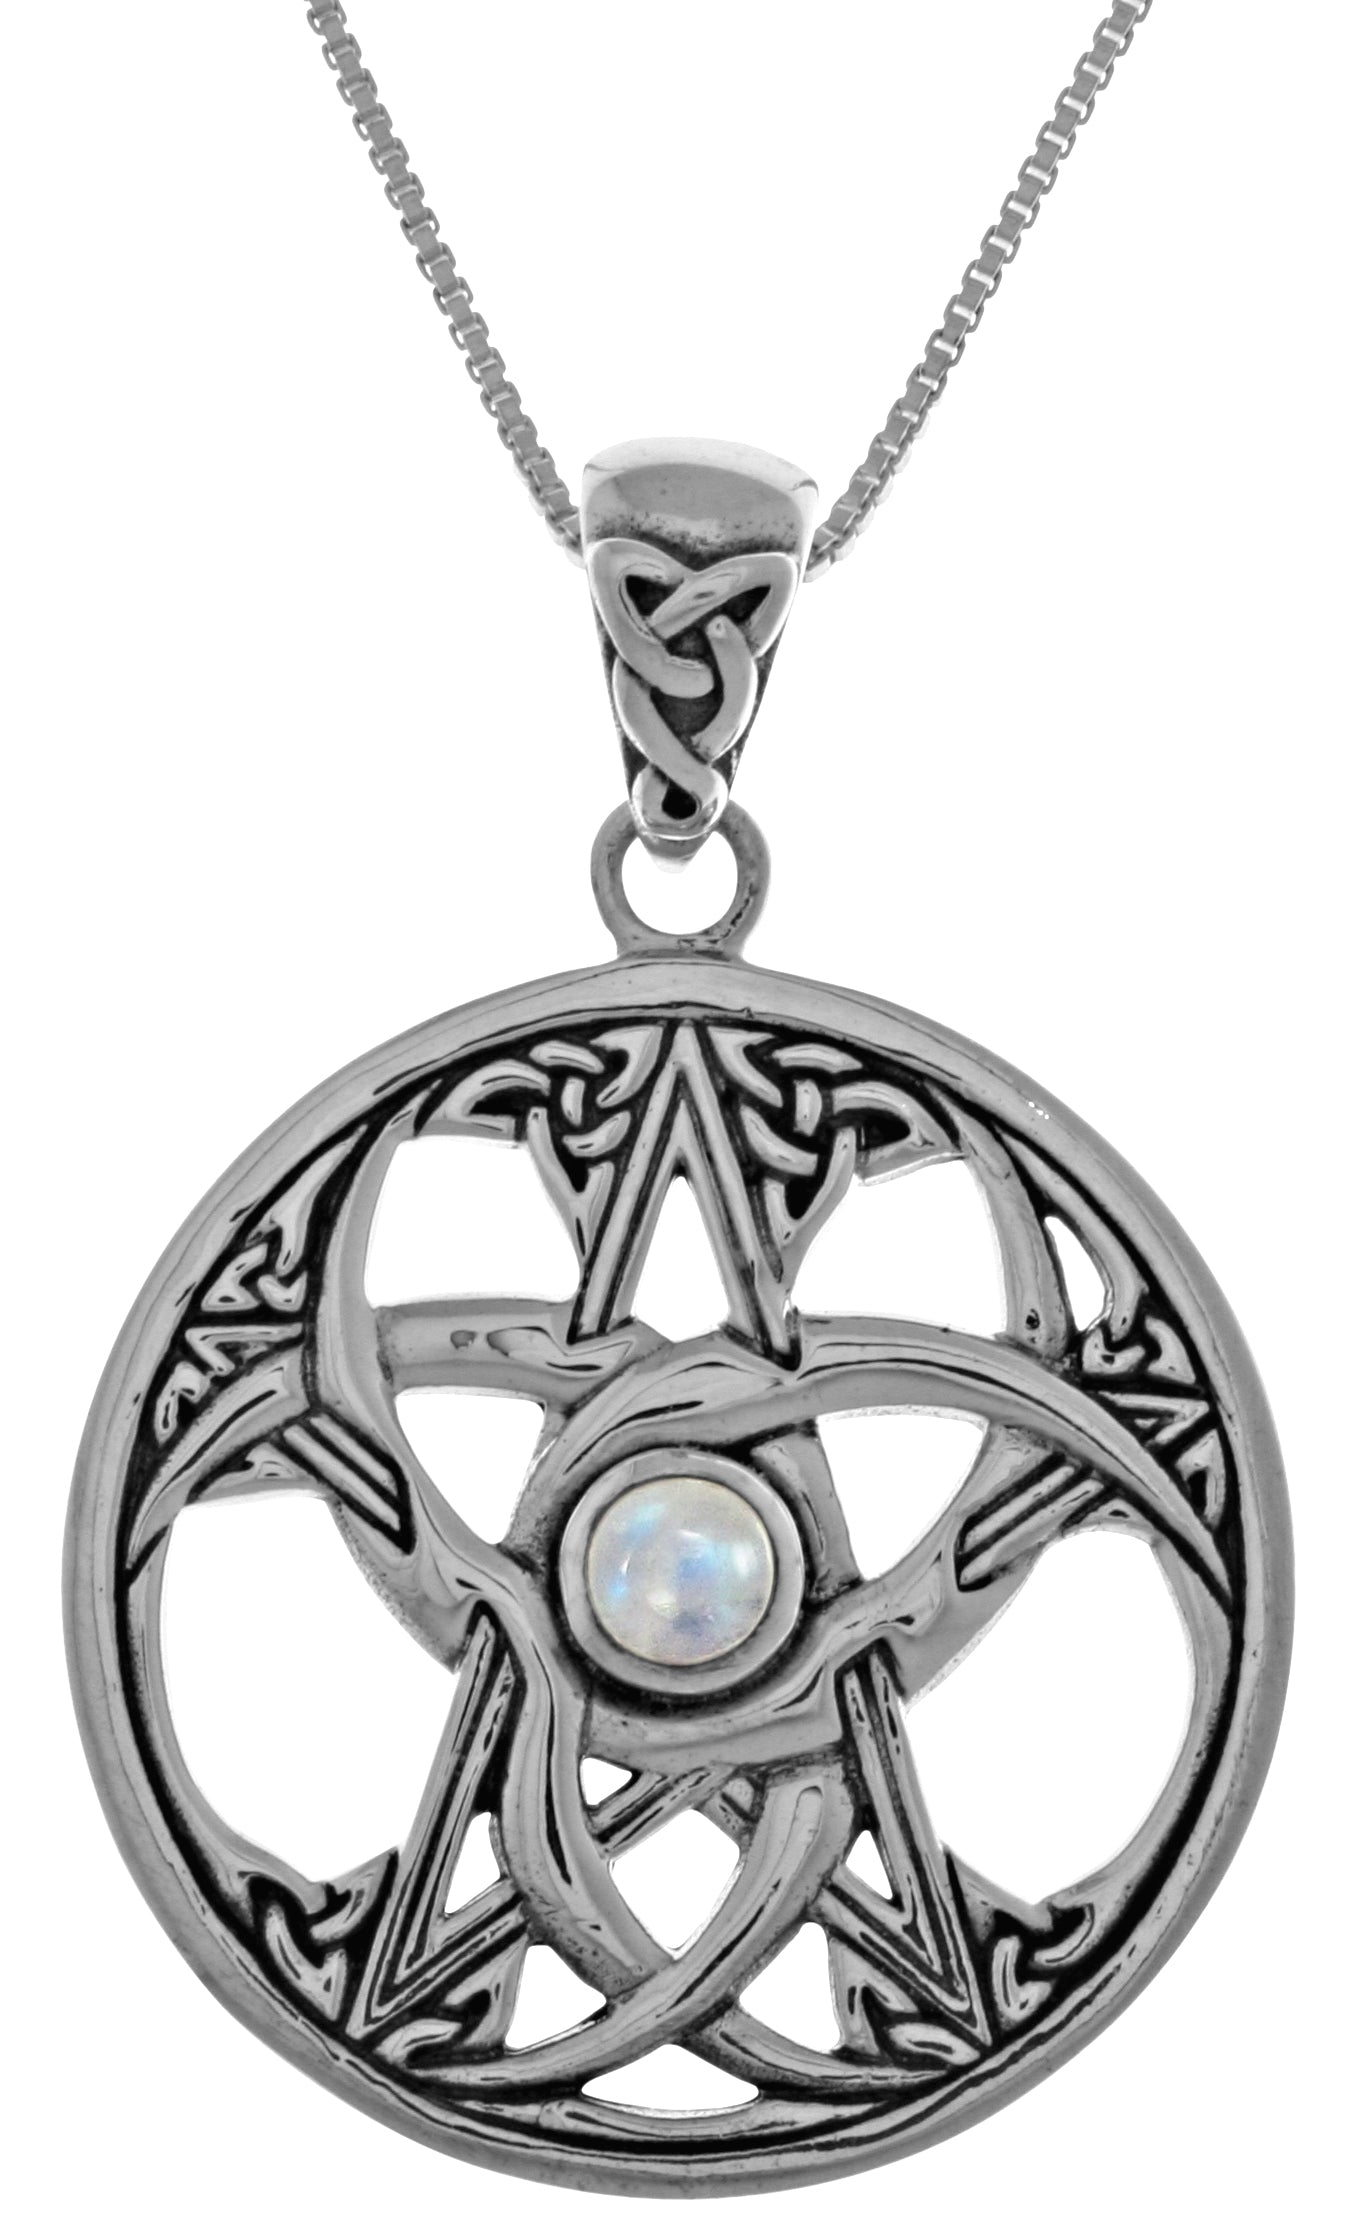 Jewelry Trends Sterling Silver Celtic Triple Crescent Moon and Star Pendant with Moonstone on 18 Inch Chain Necklace